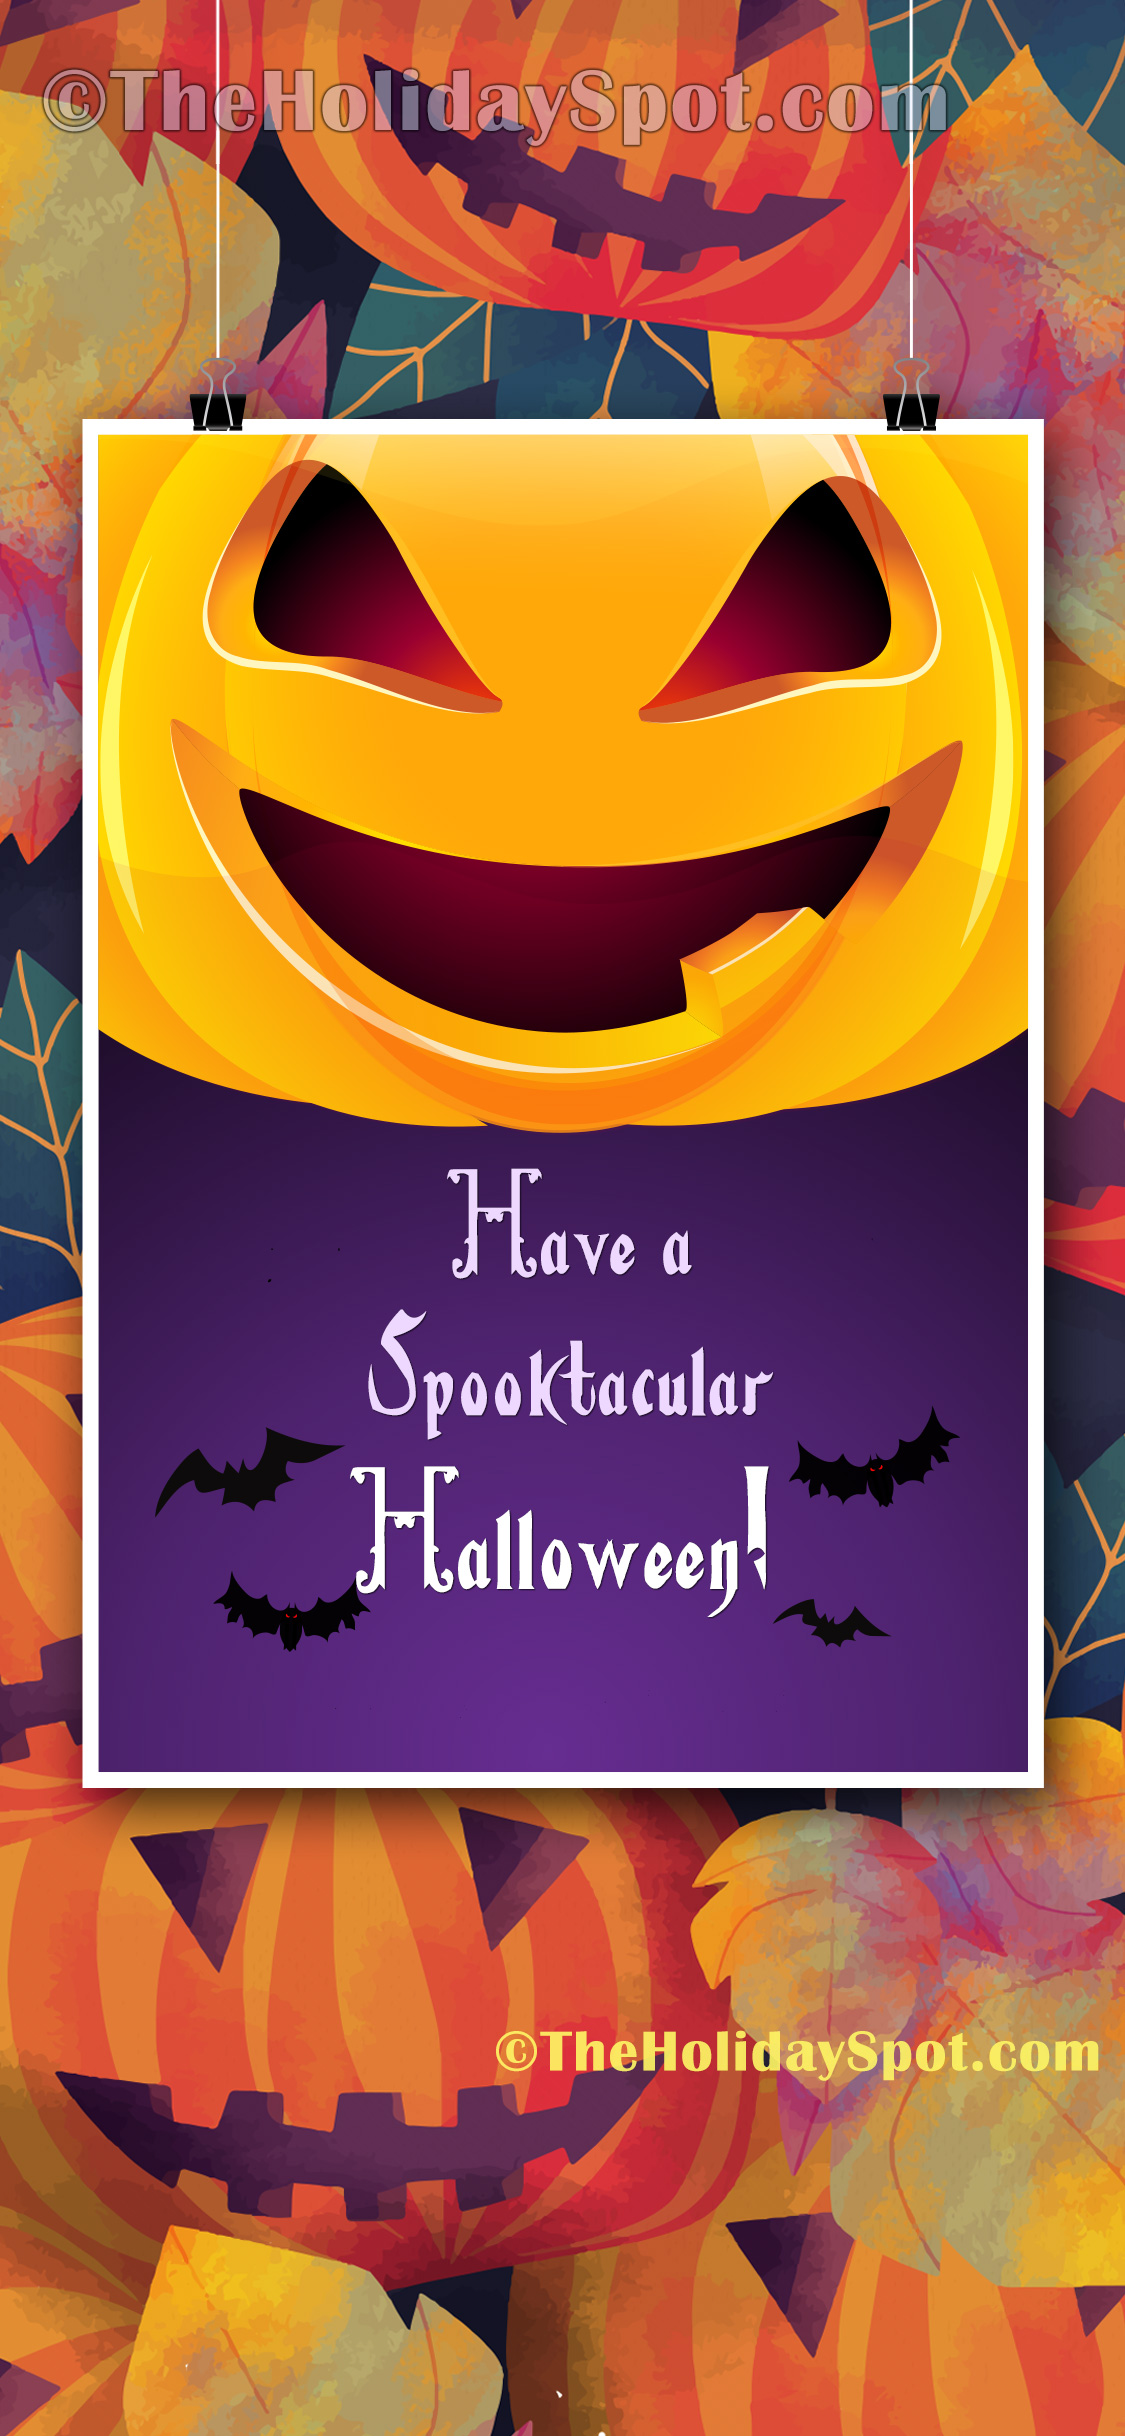 HD Wallpaper For IPhones With Spooktacular Halloween Wishes